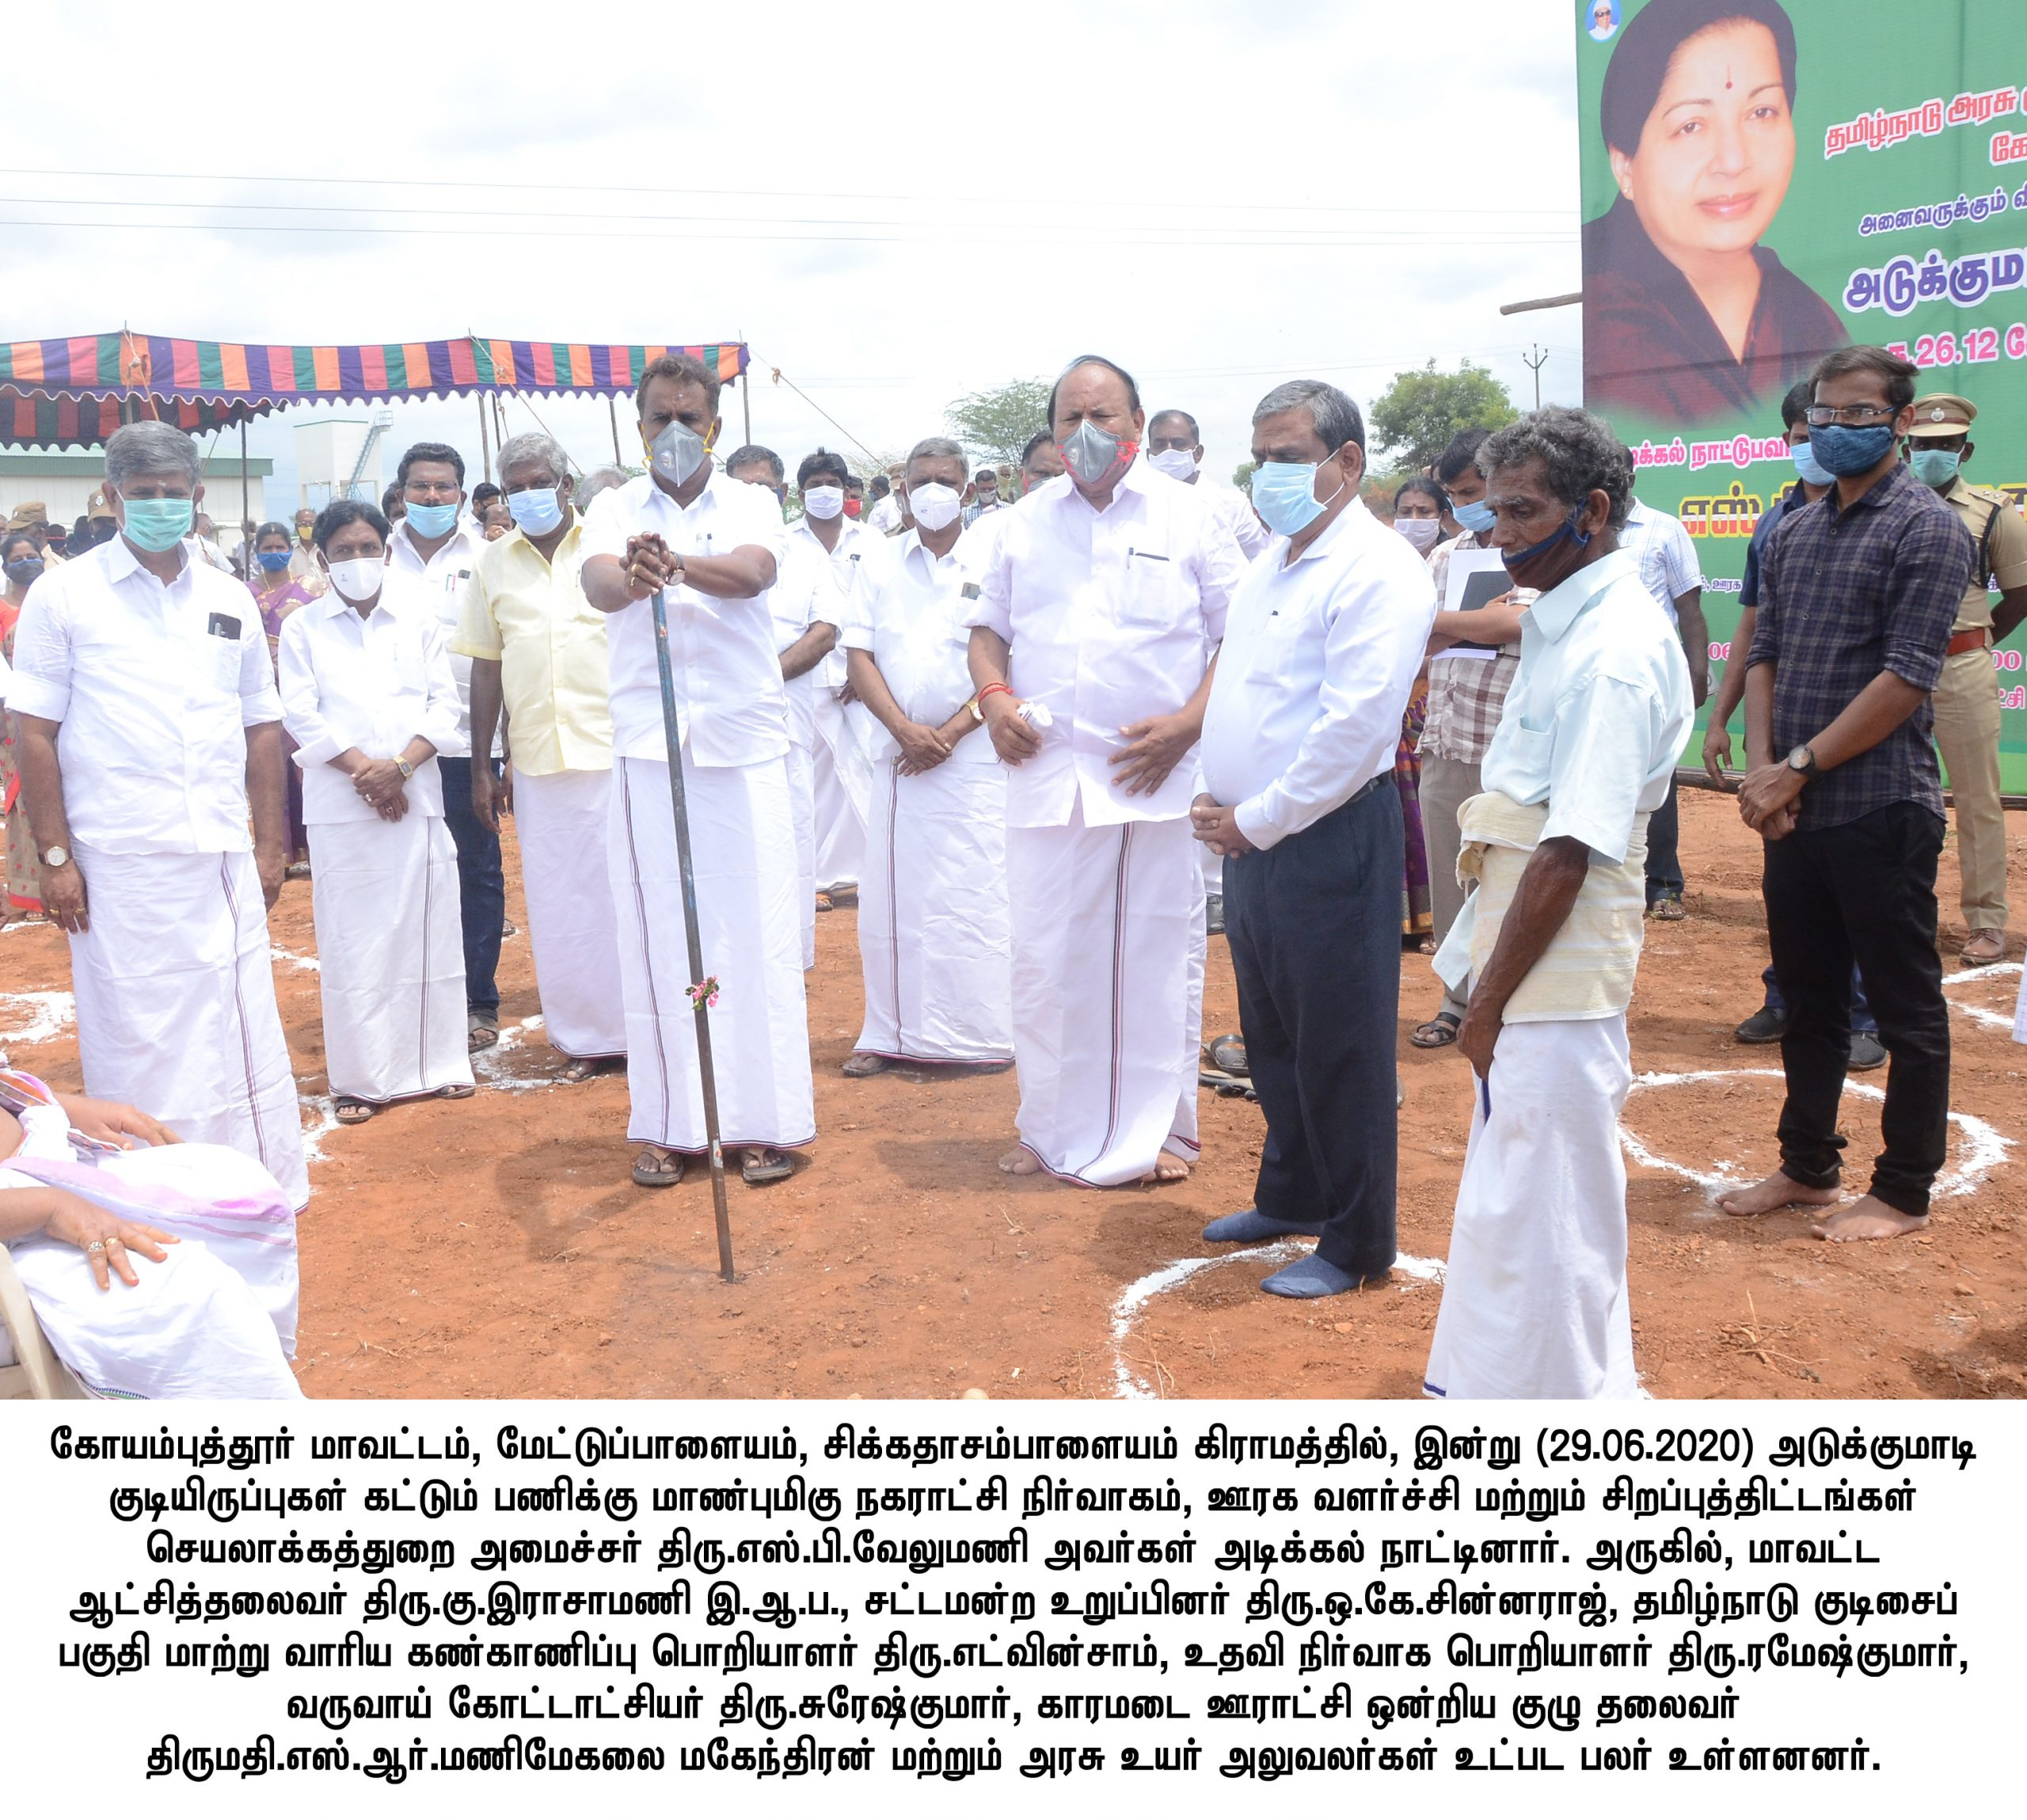 Foundation stone laying cermony held for Construction of Apartment building in Sikkathasampalyam Village